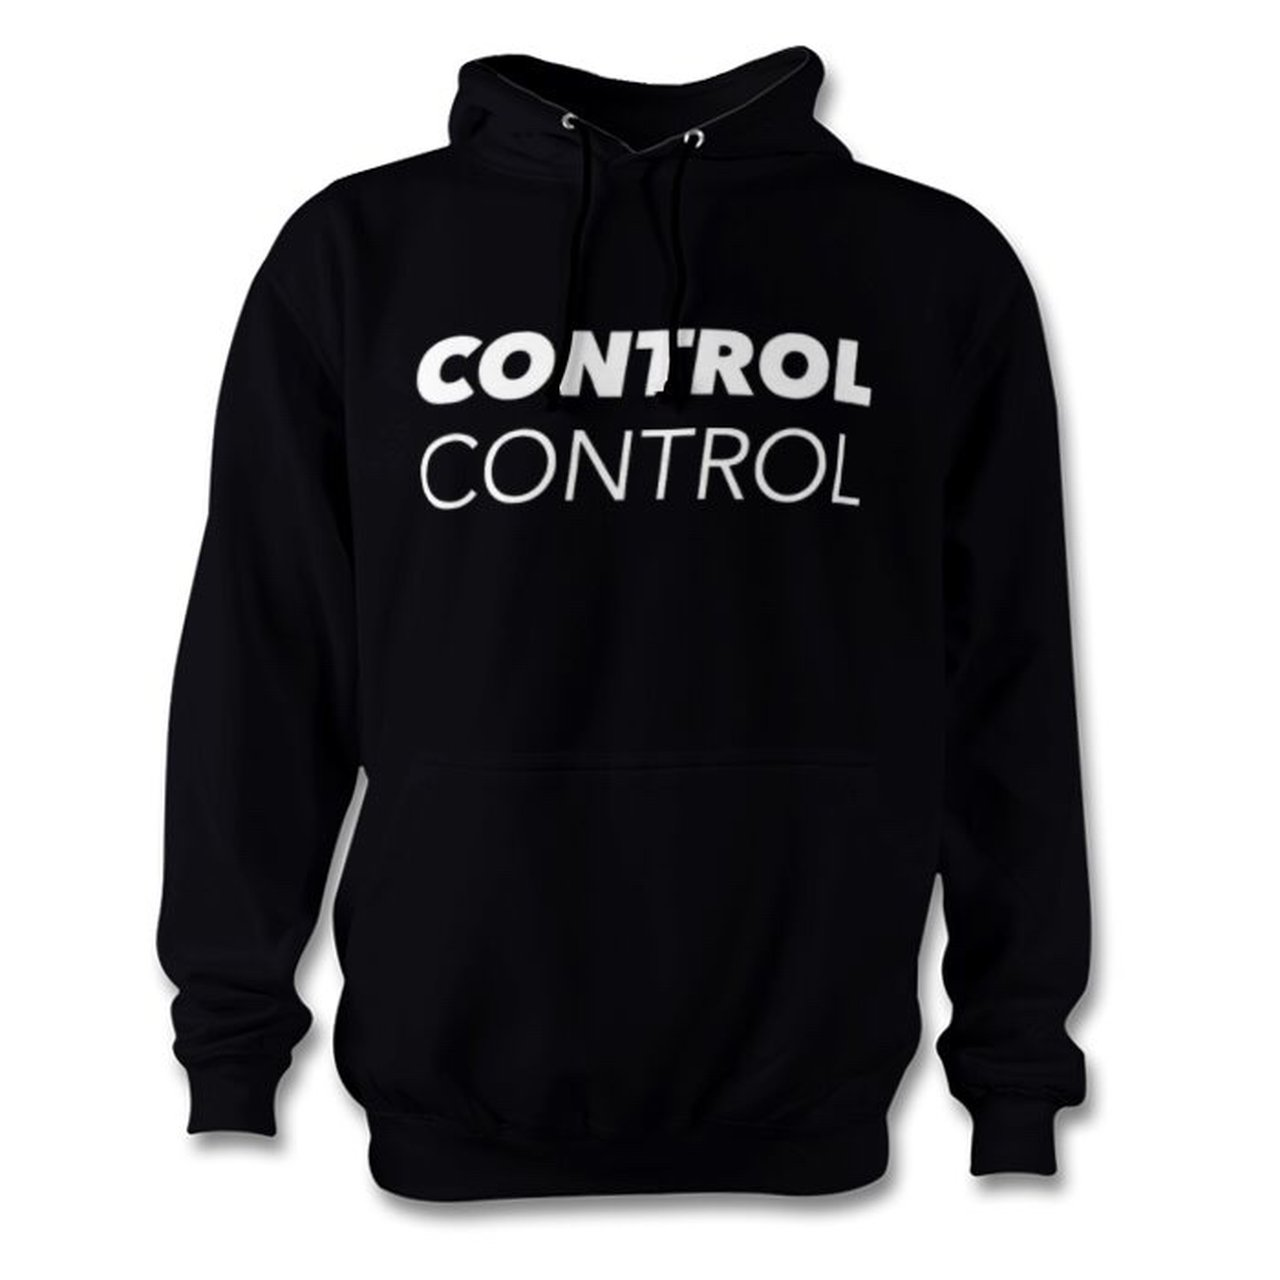 Camila Cabello She Loves Control Hoodie Unofficial Depop